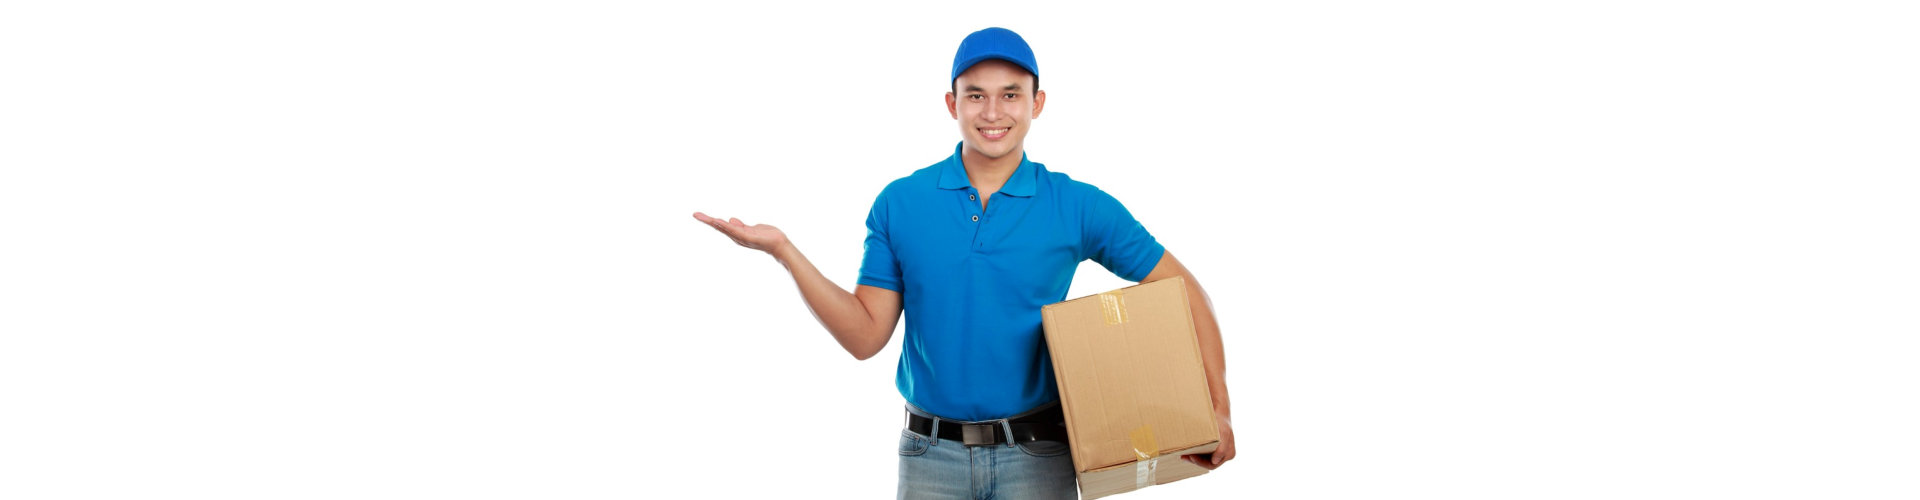 delivery man carrying a box